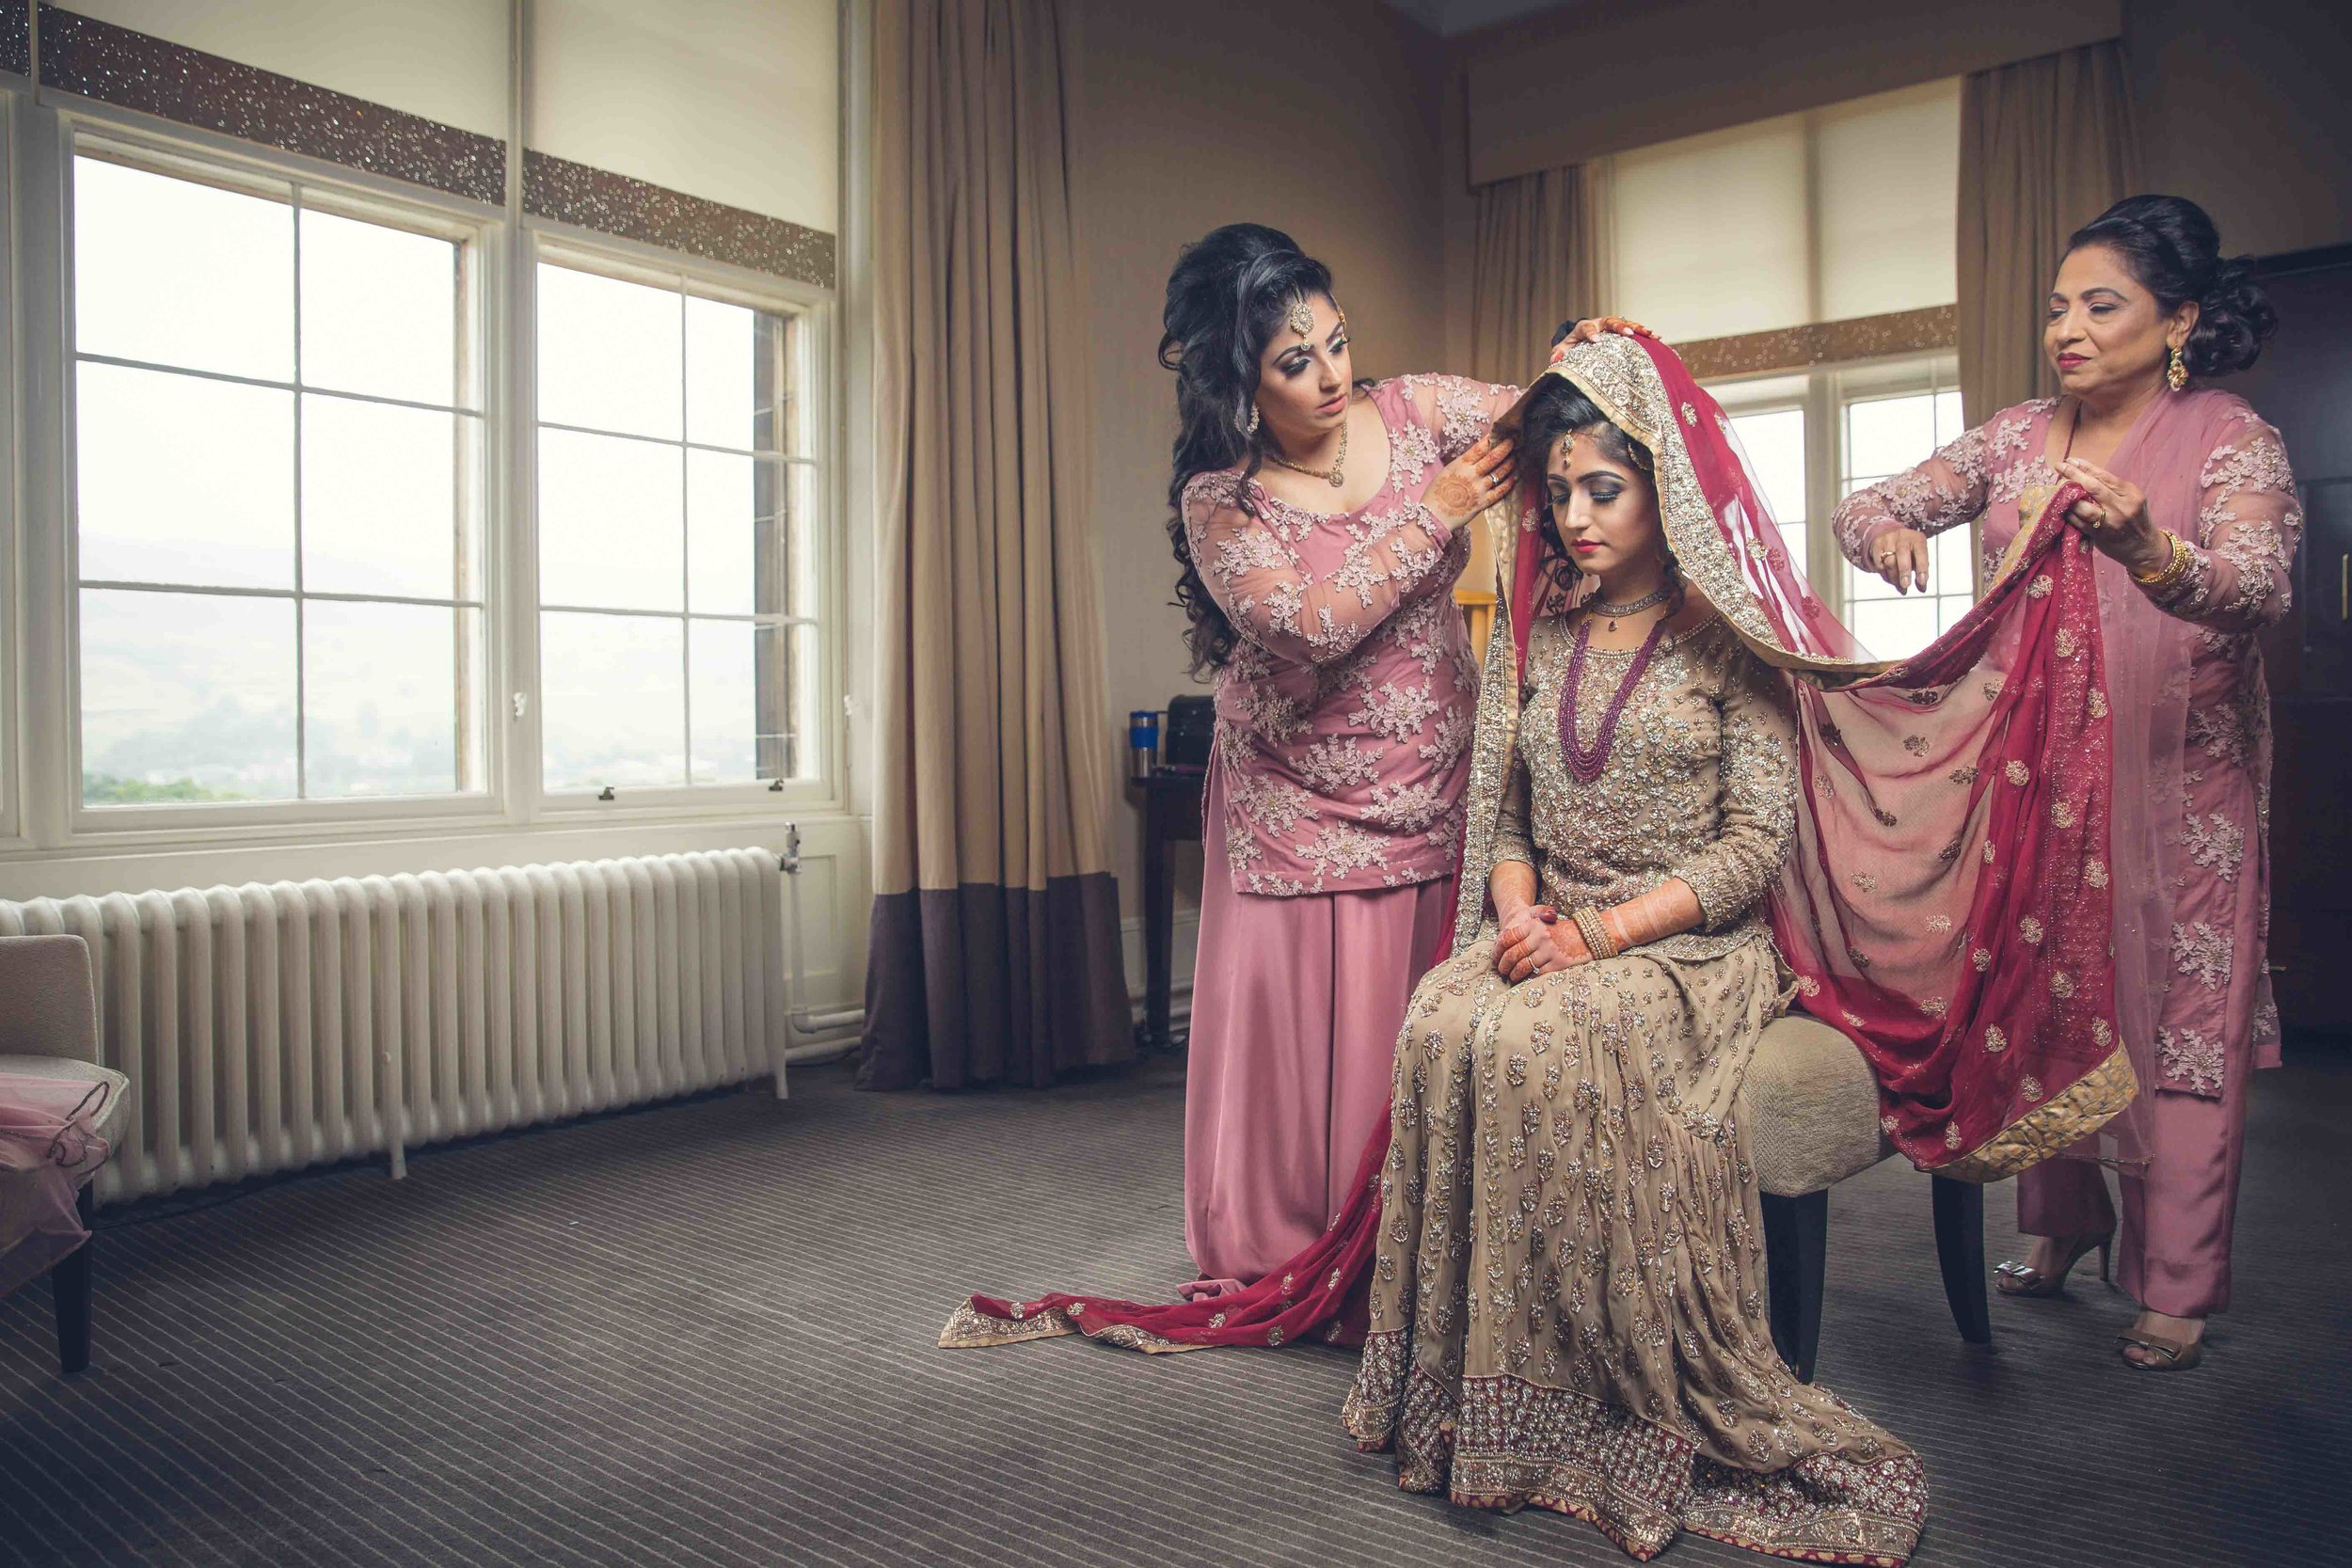 Opu Sultan Photography Asian wedding photography scotland edinburgh glasgow manchester birmingham london-246.jpg